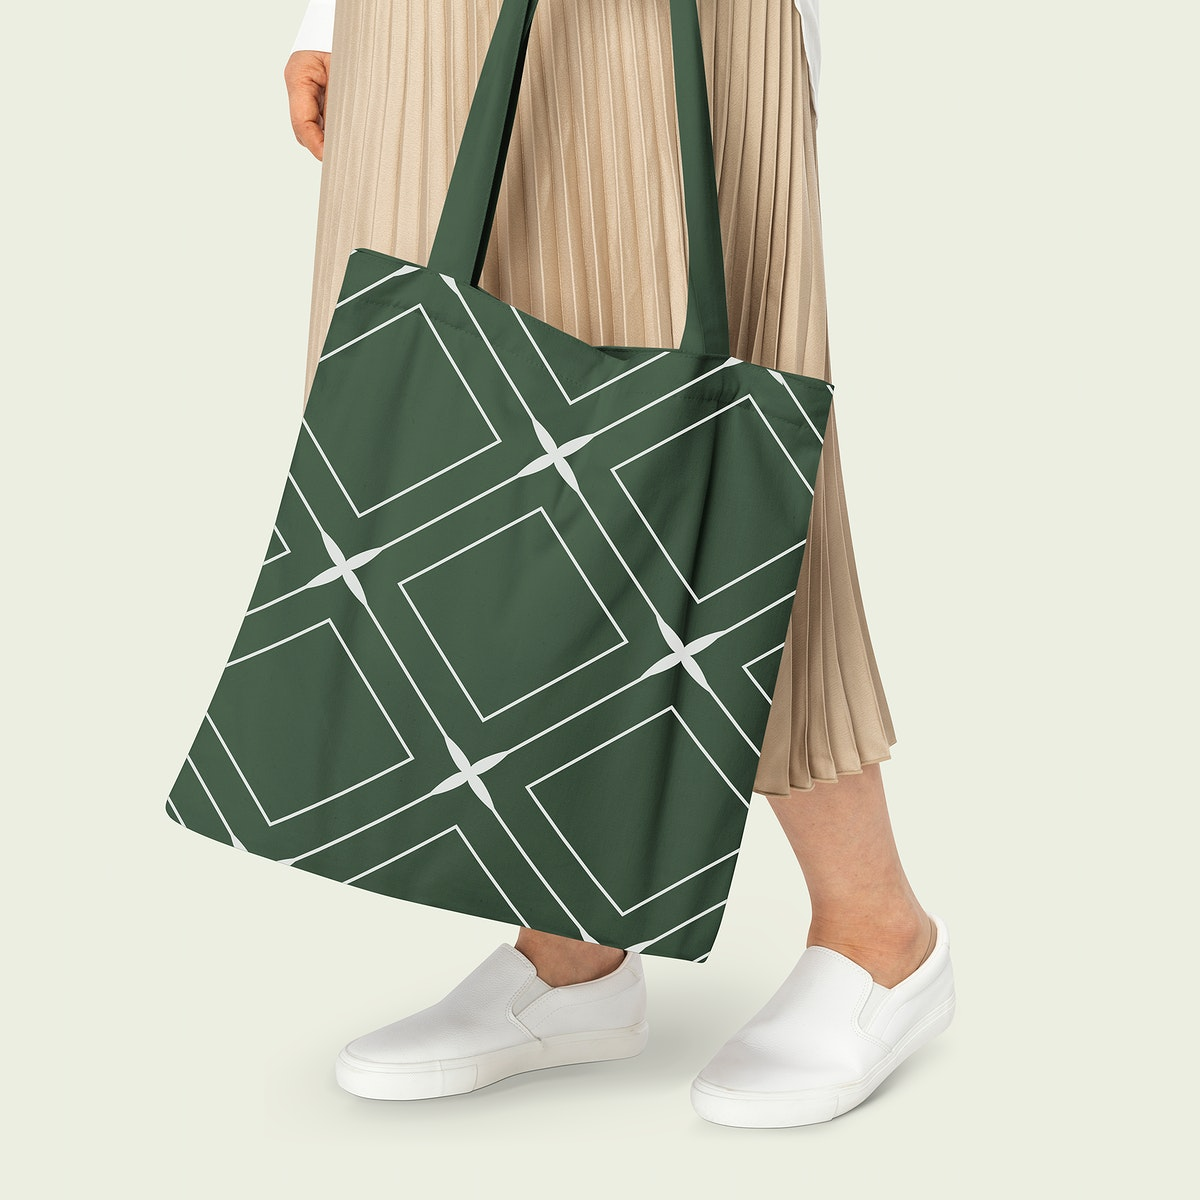 Green tote bag mockup psd with rhombus pattern casual apparel